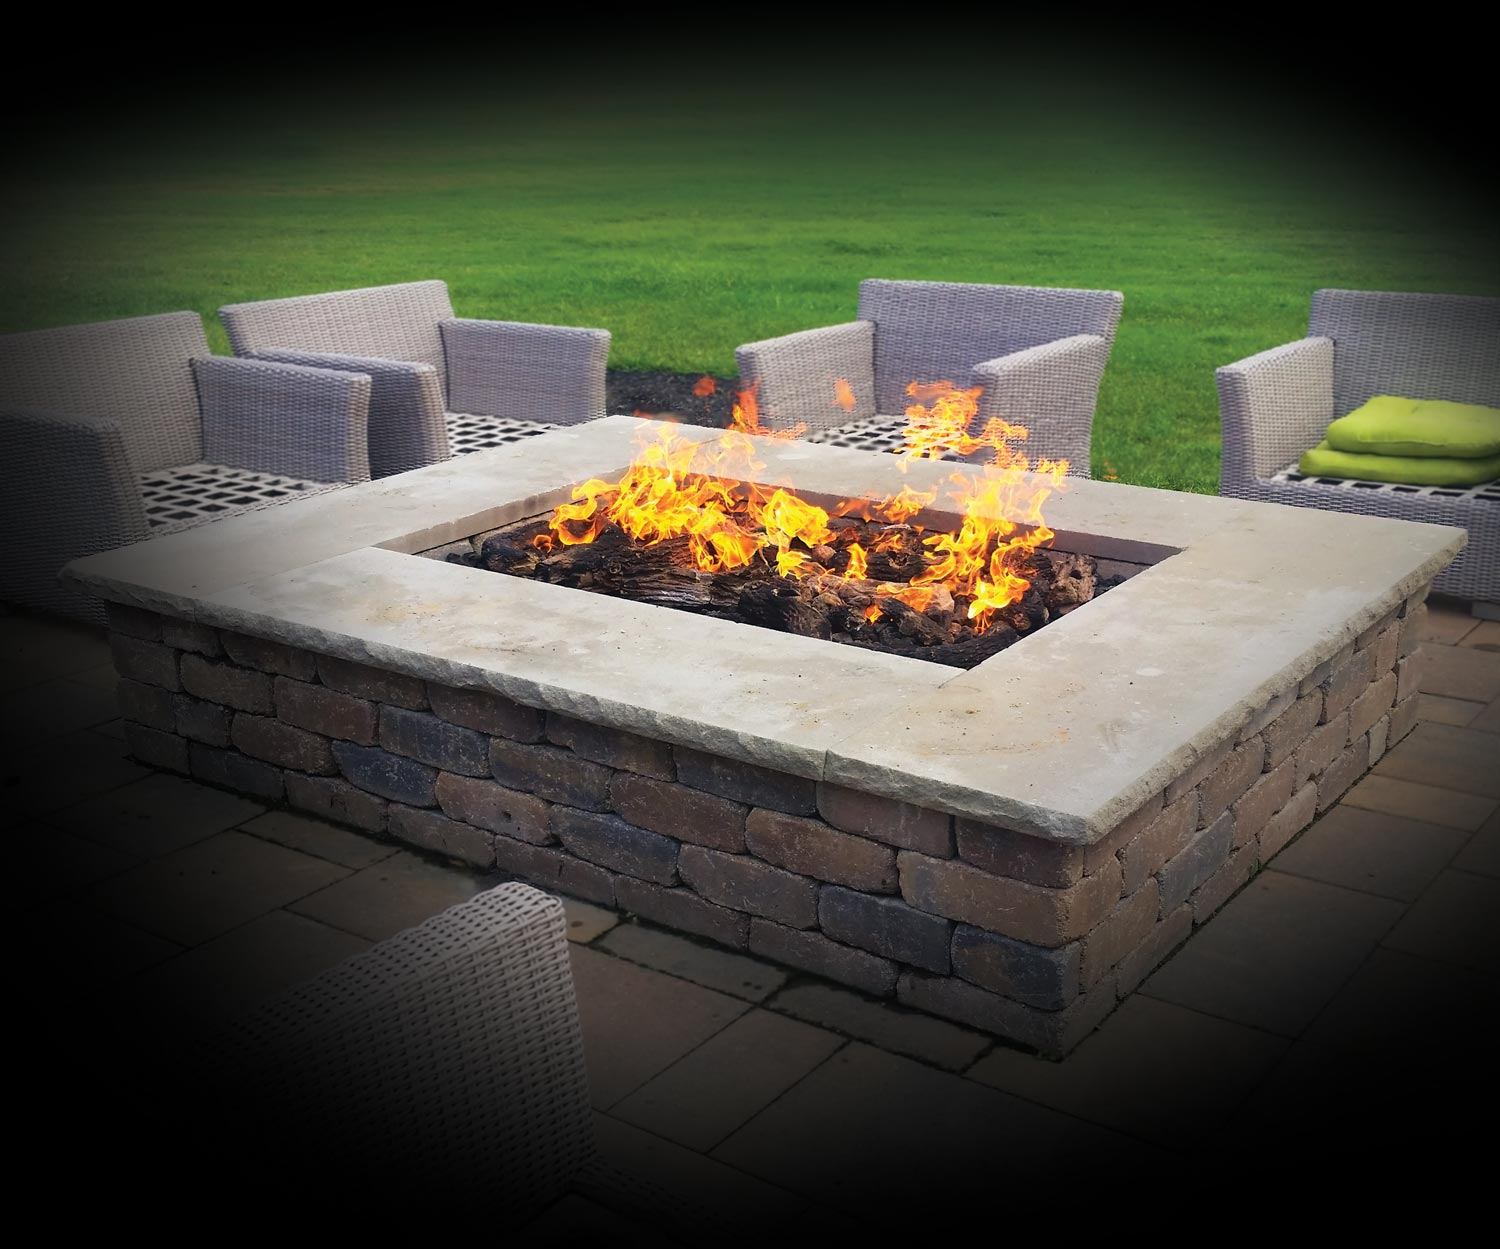 Custom Design Fire Tables at Chim Chimney Fireplace Pool & Spa